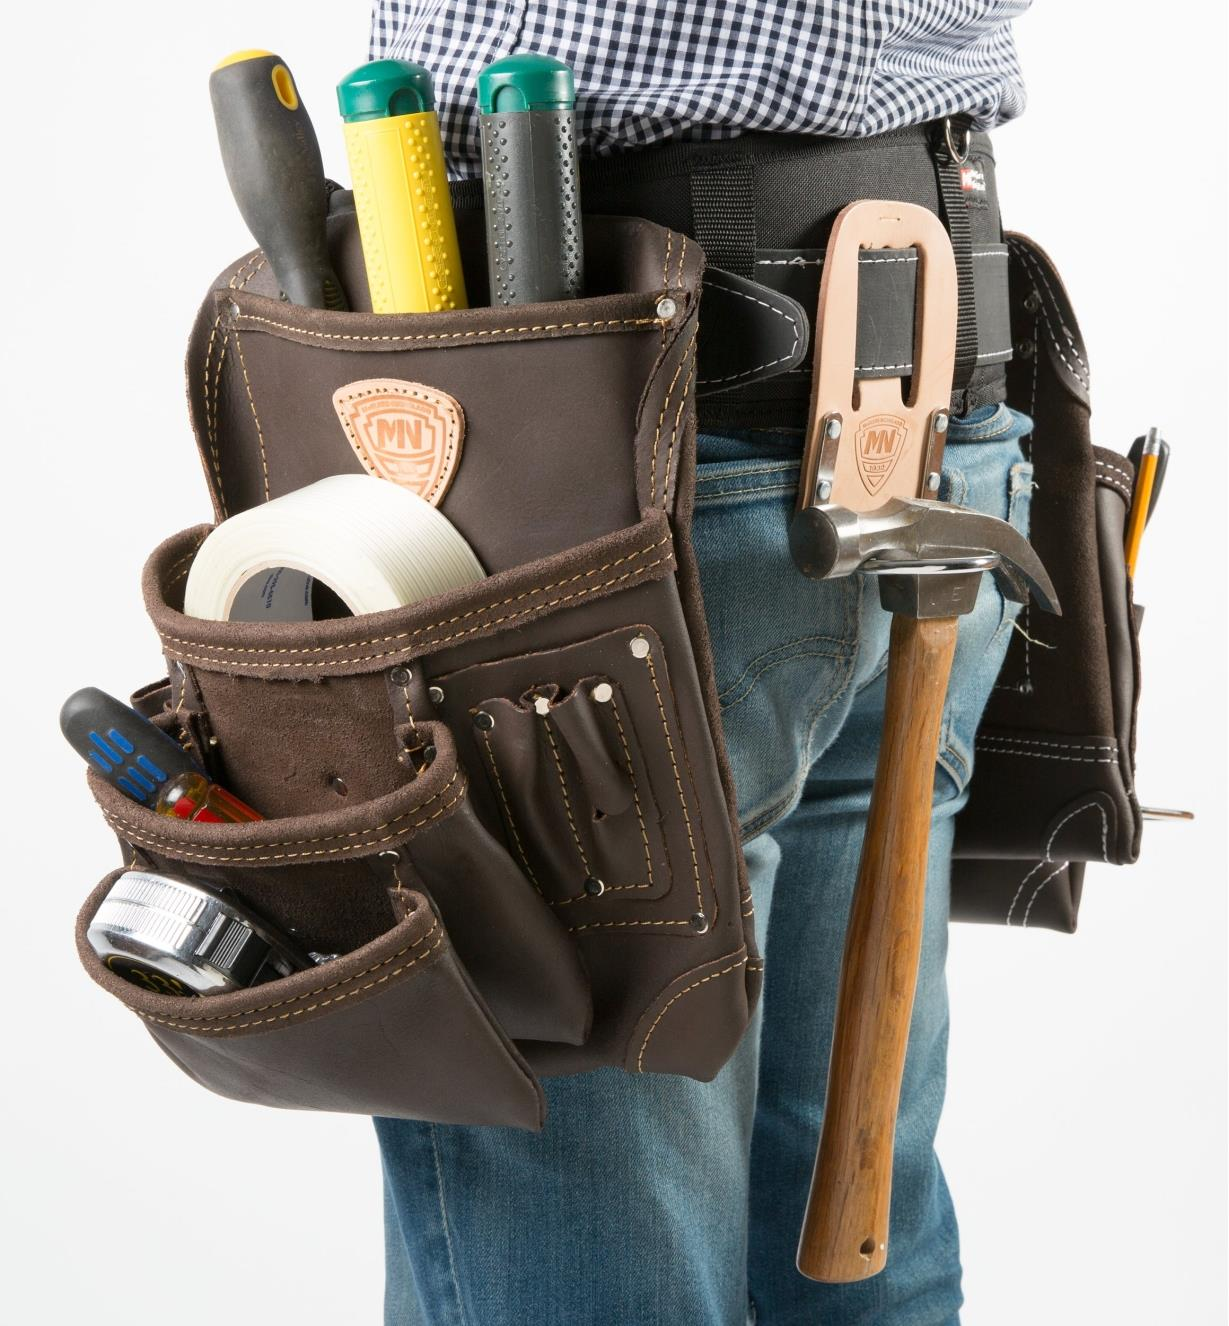 A man wearing a belt with two pouches and a hammer holder